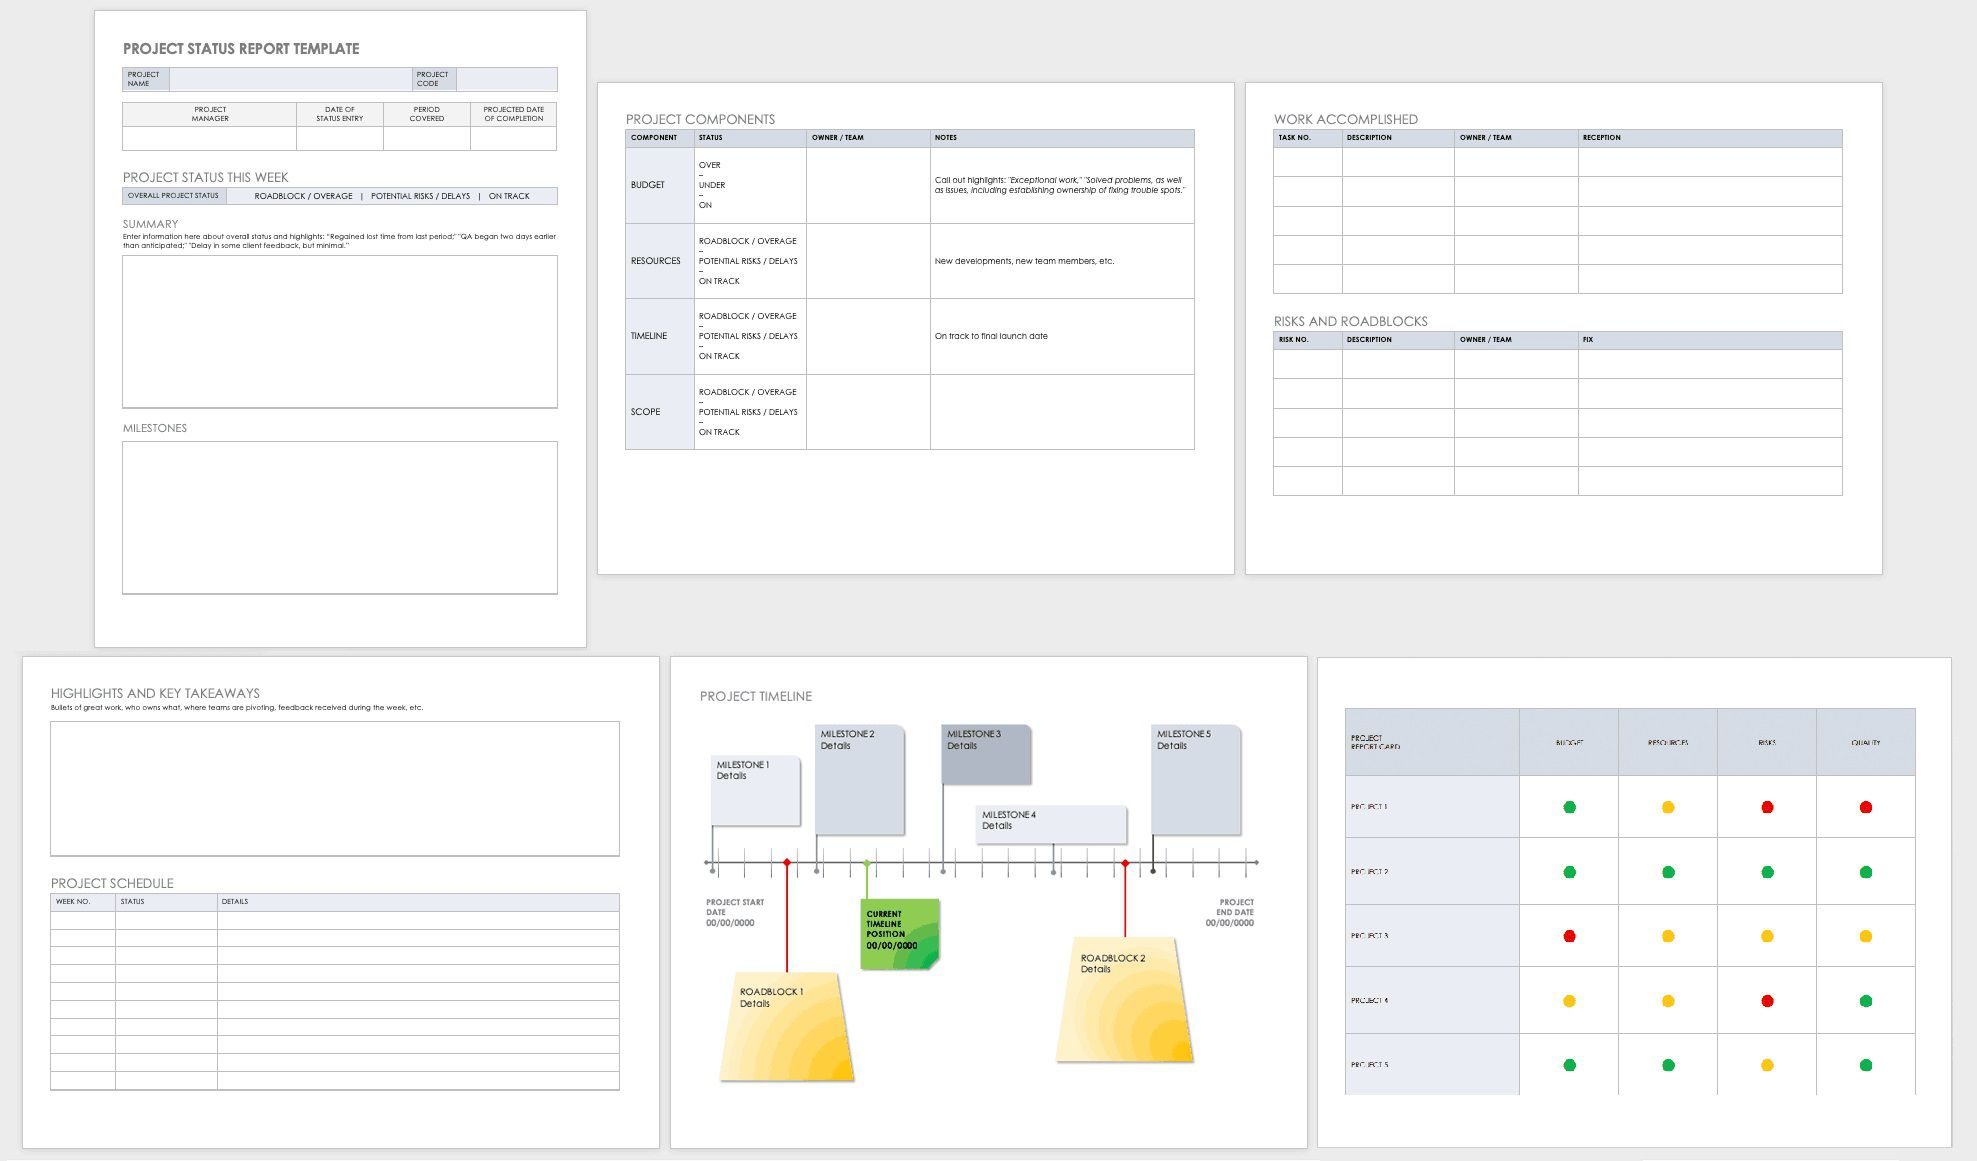 004 Fearsome Project Management Weekly Statu Report Template Ppt Idea  Template+powerpointFull